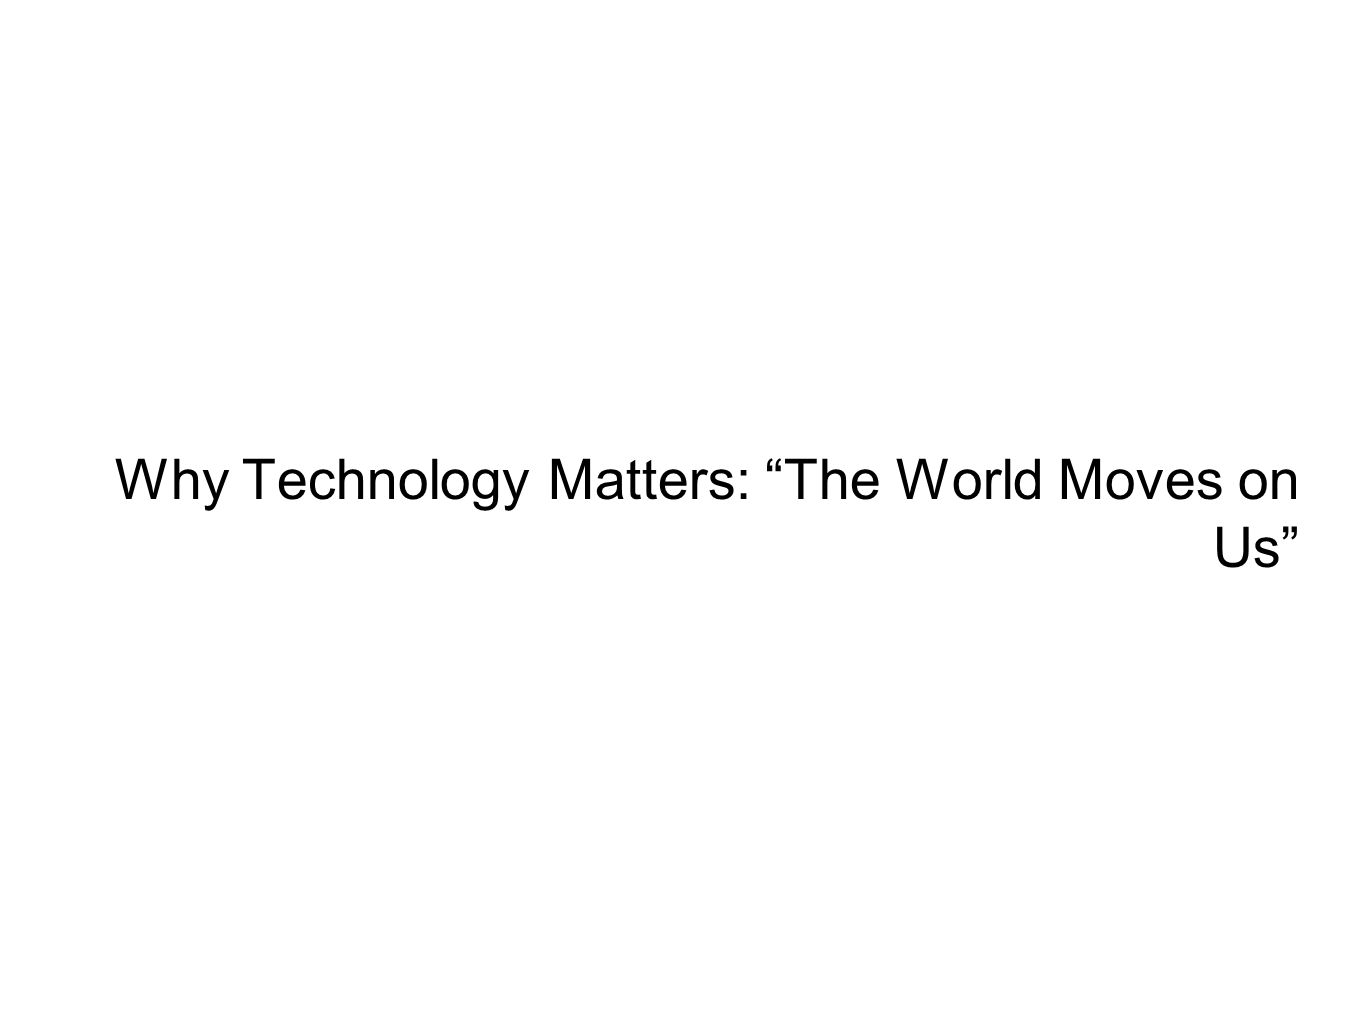 Why Technology Matters: The World Moves on Us